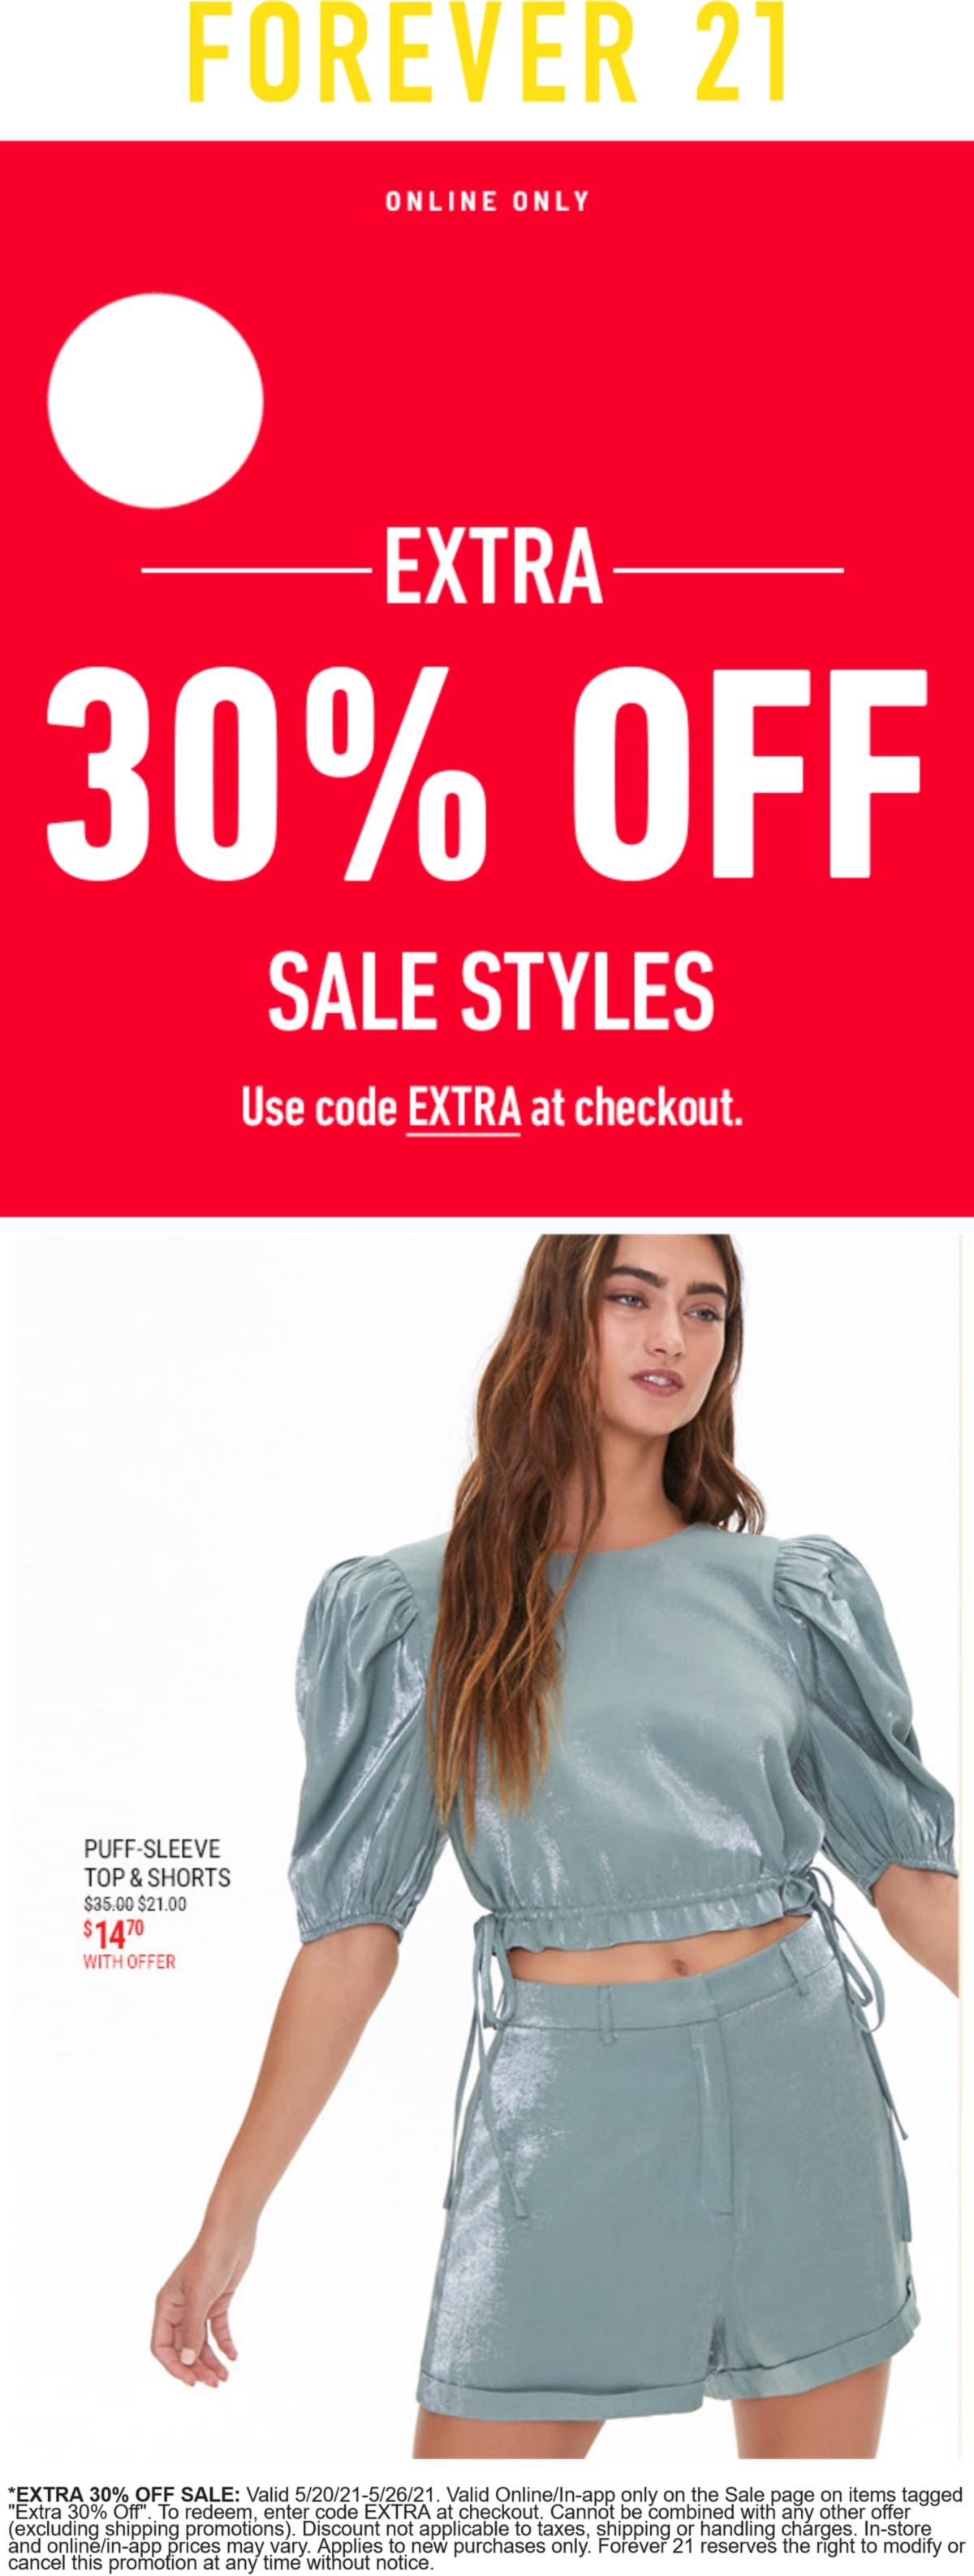 Forever 21 stores Coupon  Extra 30% off sale items online at Forever 21 via promo code EXTRA #forever21